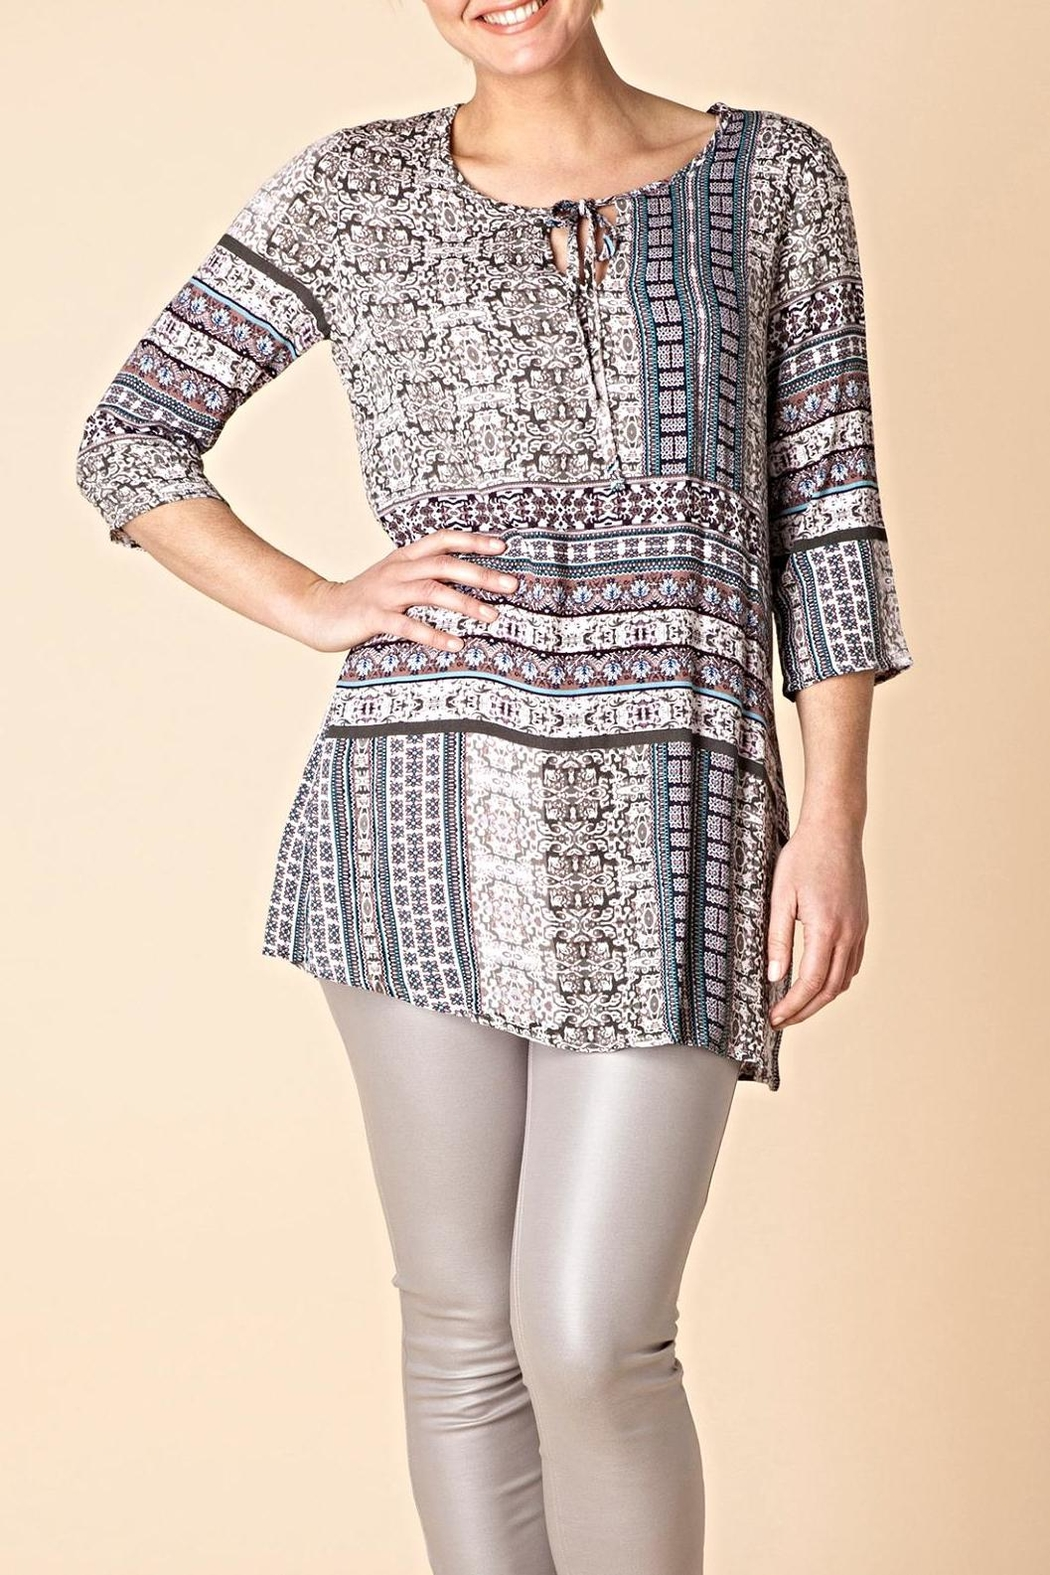 Yest Borderline Prarie Tunic Top - Main Image